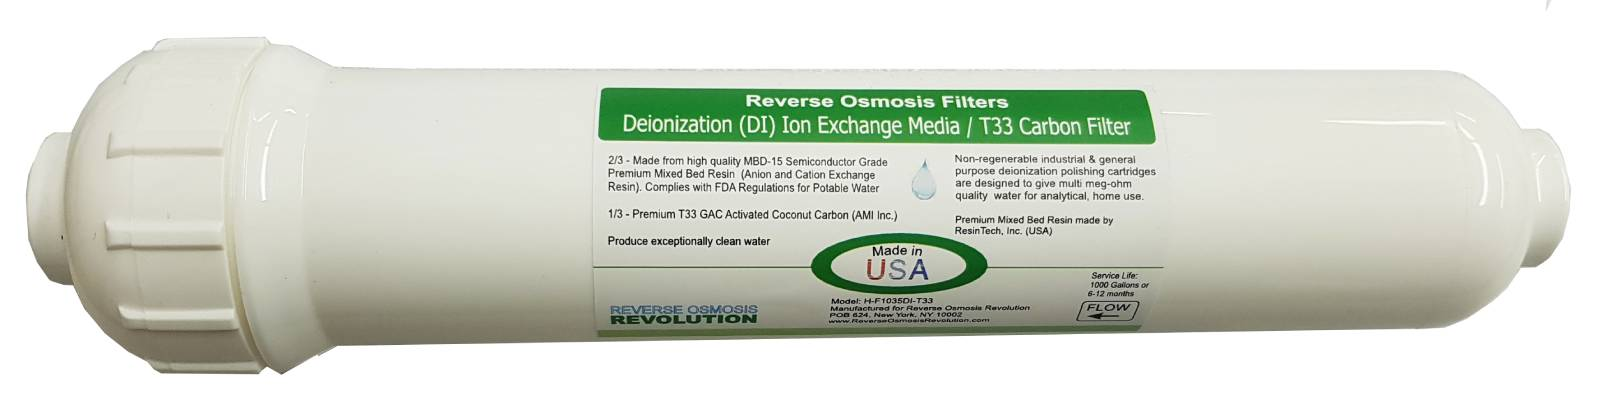 Premium DI Ion Exchange Filter (0PPM), (2/3) and post GAC Carbon T33 (1/3)